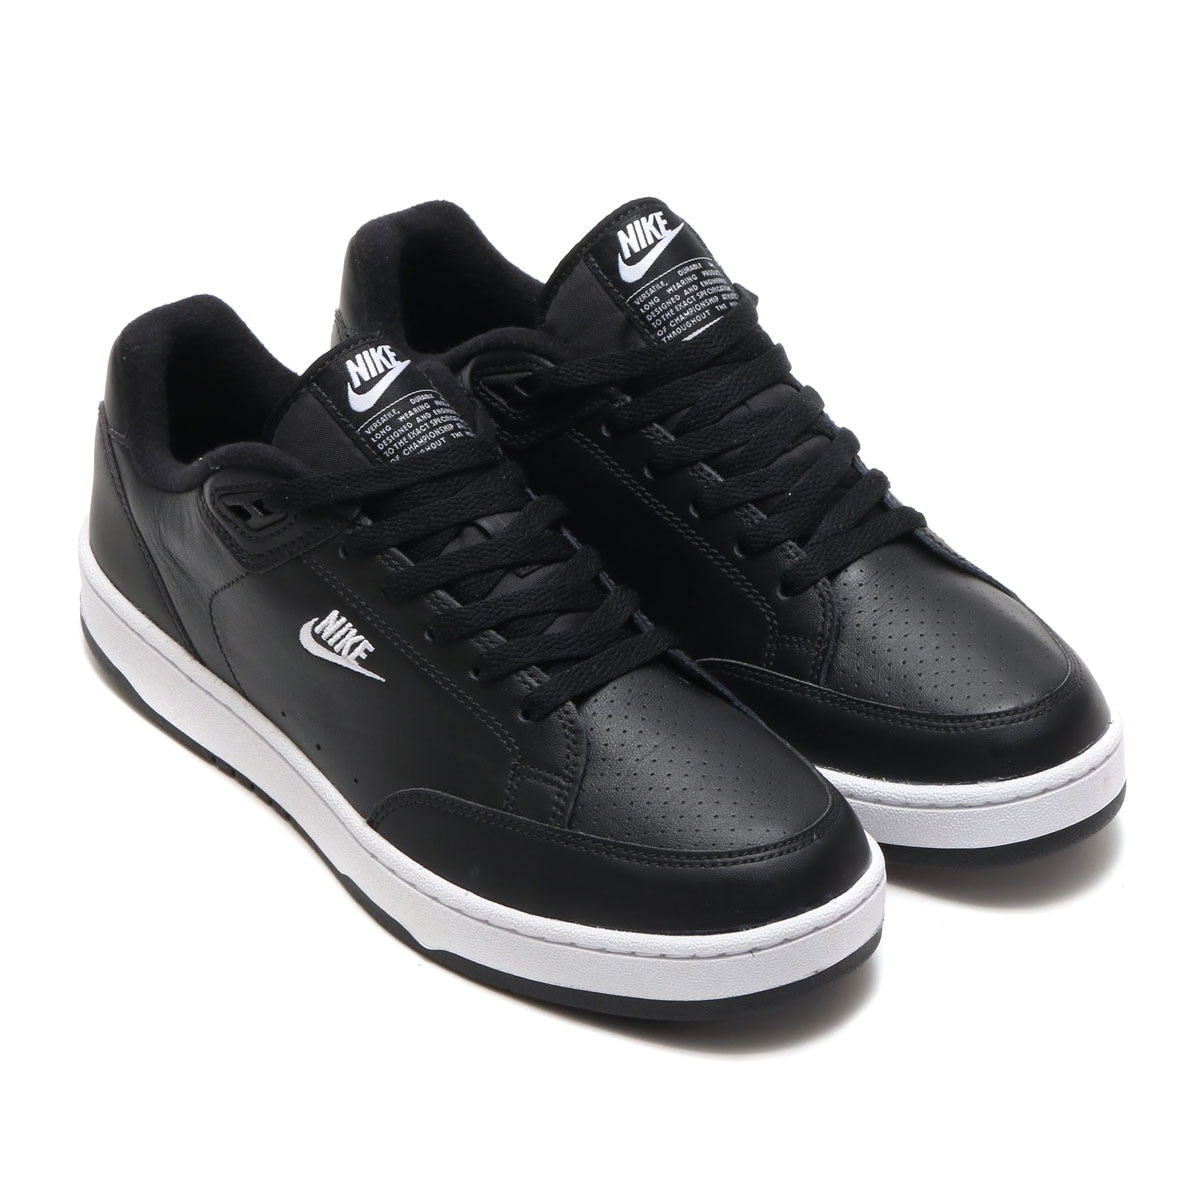 new arrival ee6ad 2fe57 The moment when the Nike ground stands II men shoes revivified the tennis  shoes which won a favorable reception in 1991 as lifestyle sneakers.